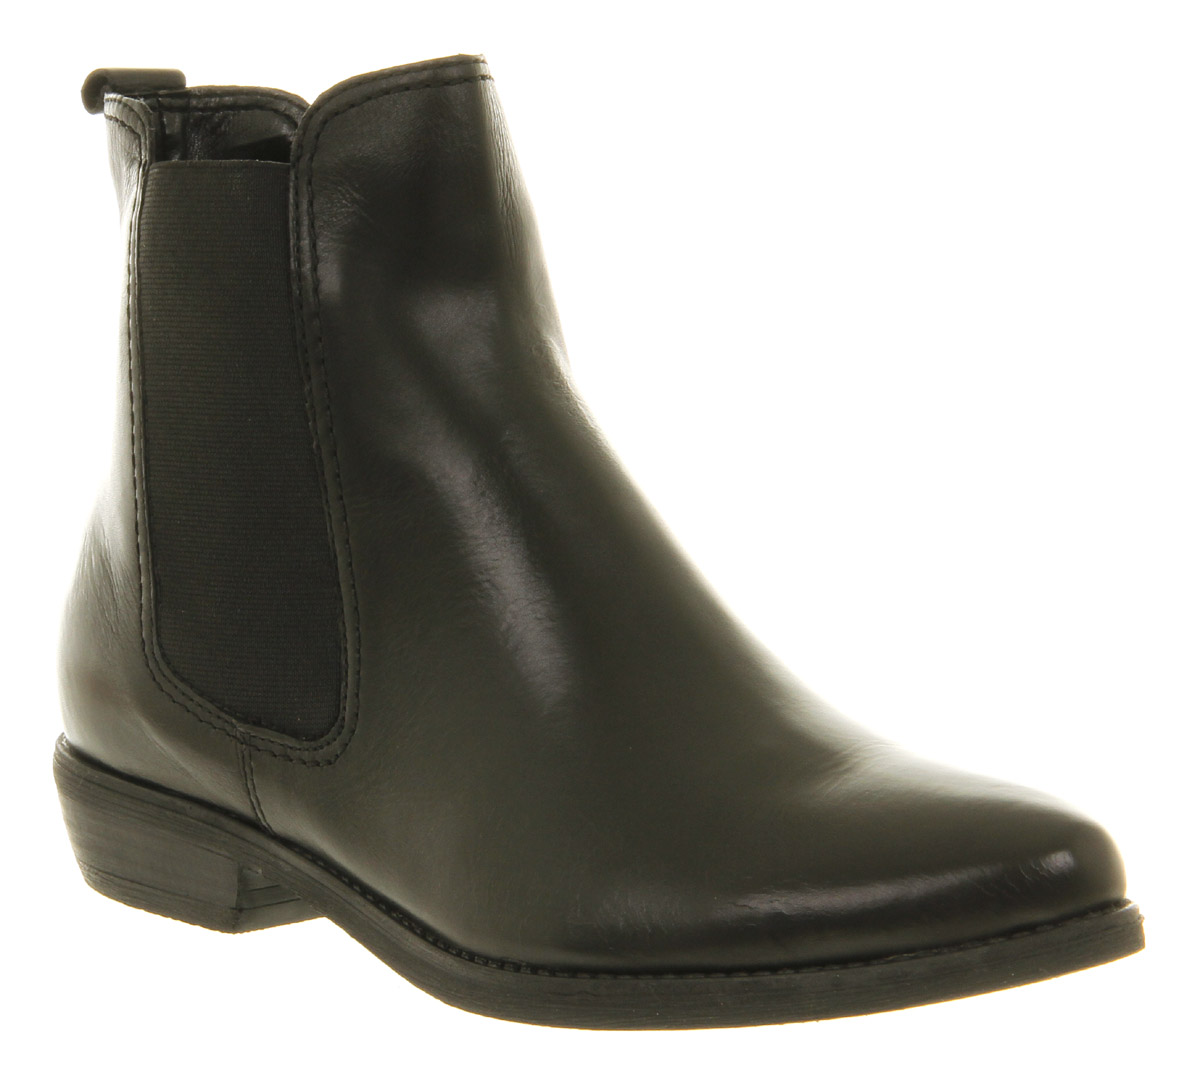 SUPERCHELSEA Leather Chelsea Boots If you're who we think you are, you might never take these boots off. They're groovy, soft to pull on, melt into your feet like your favorite old pair of jeans, and feel like sneakers.